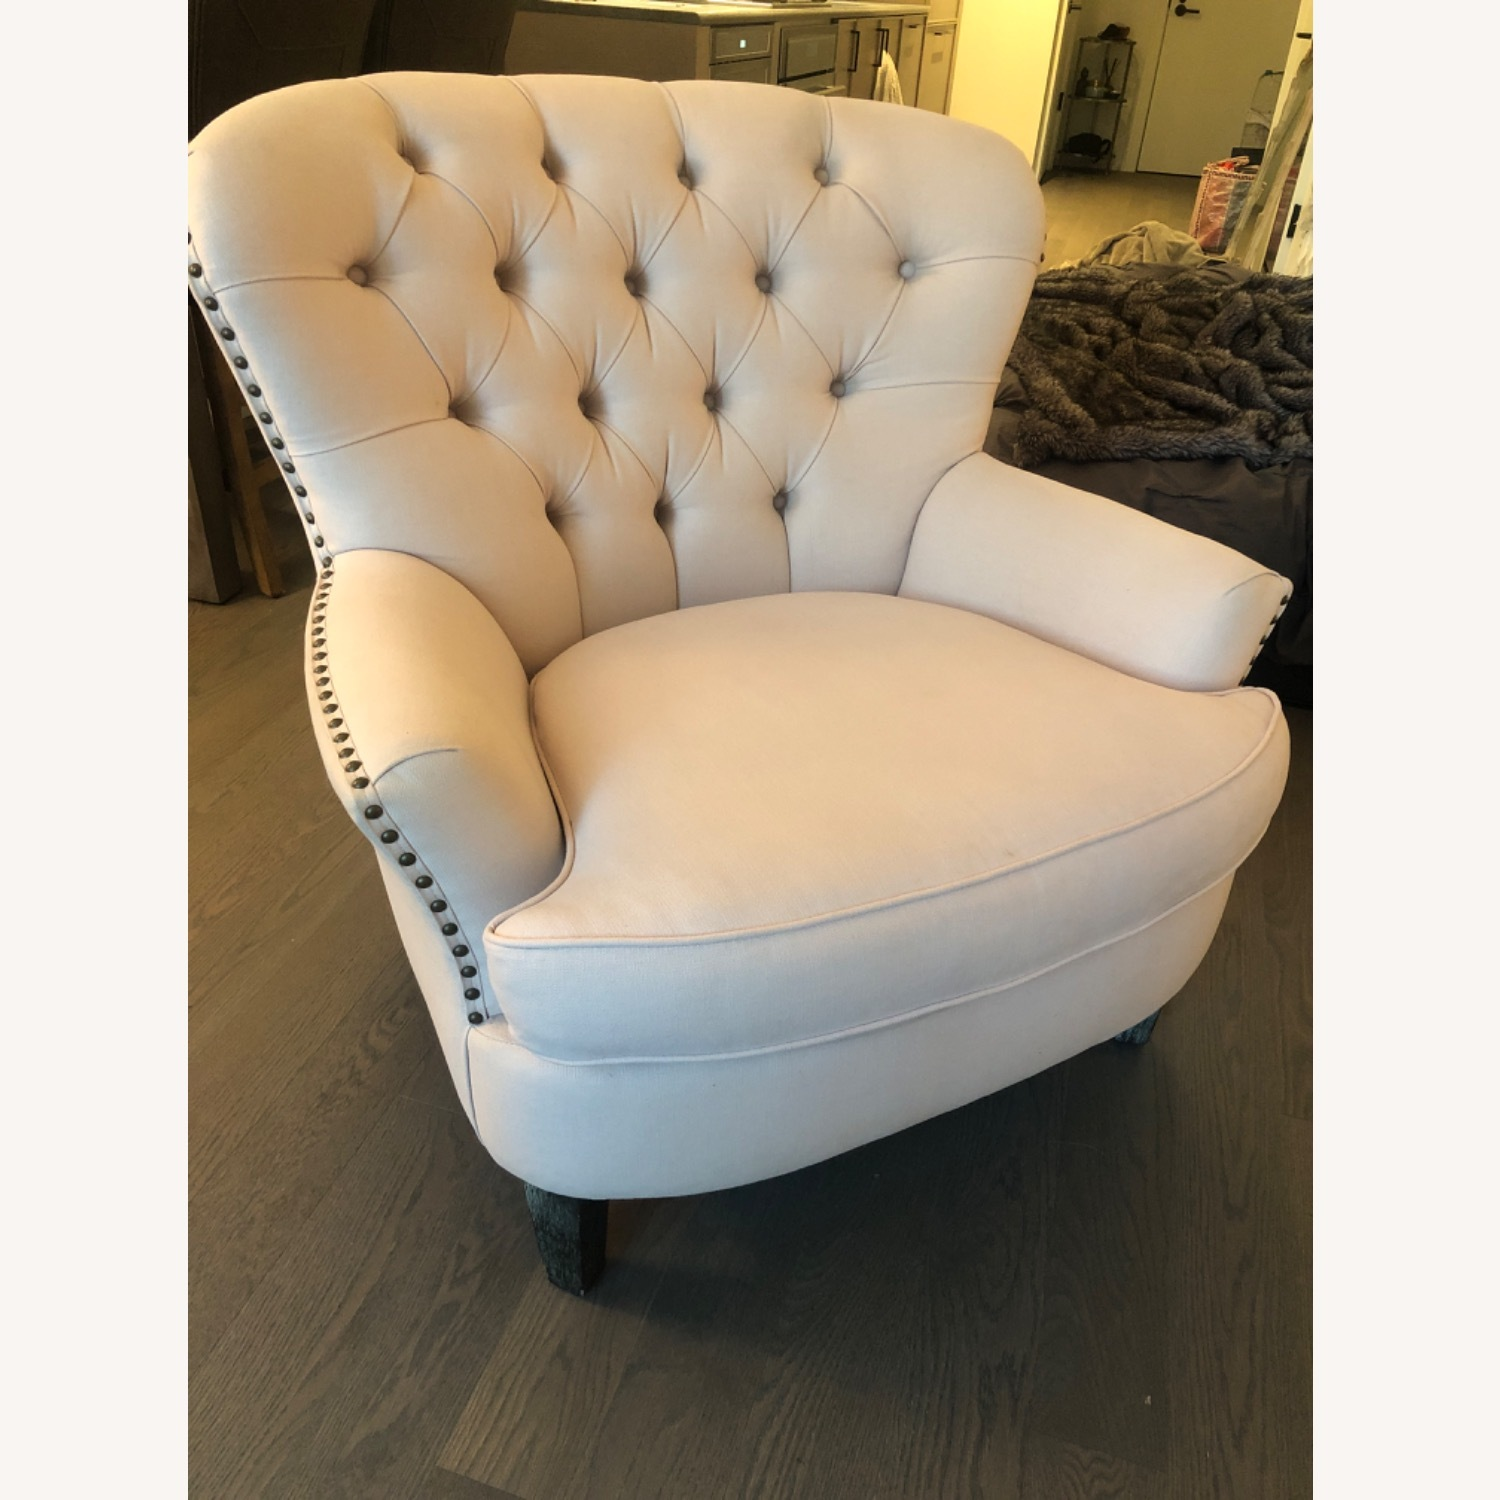 Pottery Barn Cardiff Chair Cotton Blush - image-1